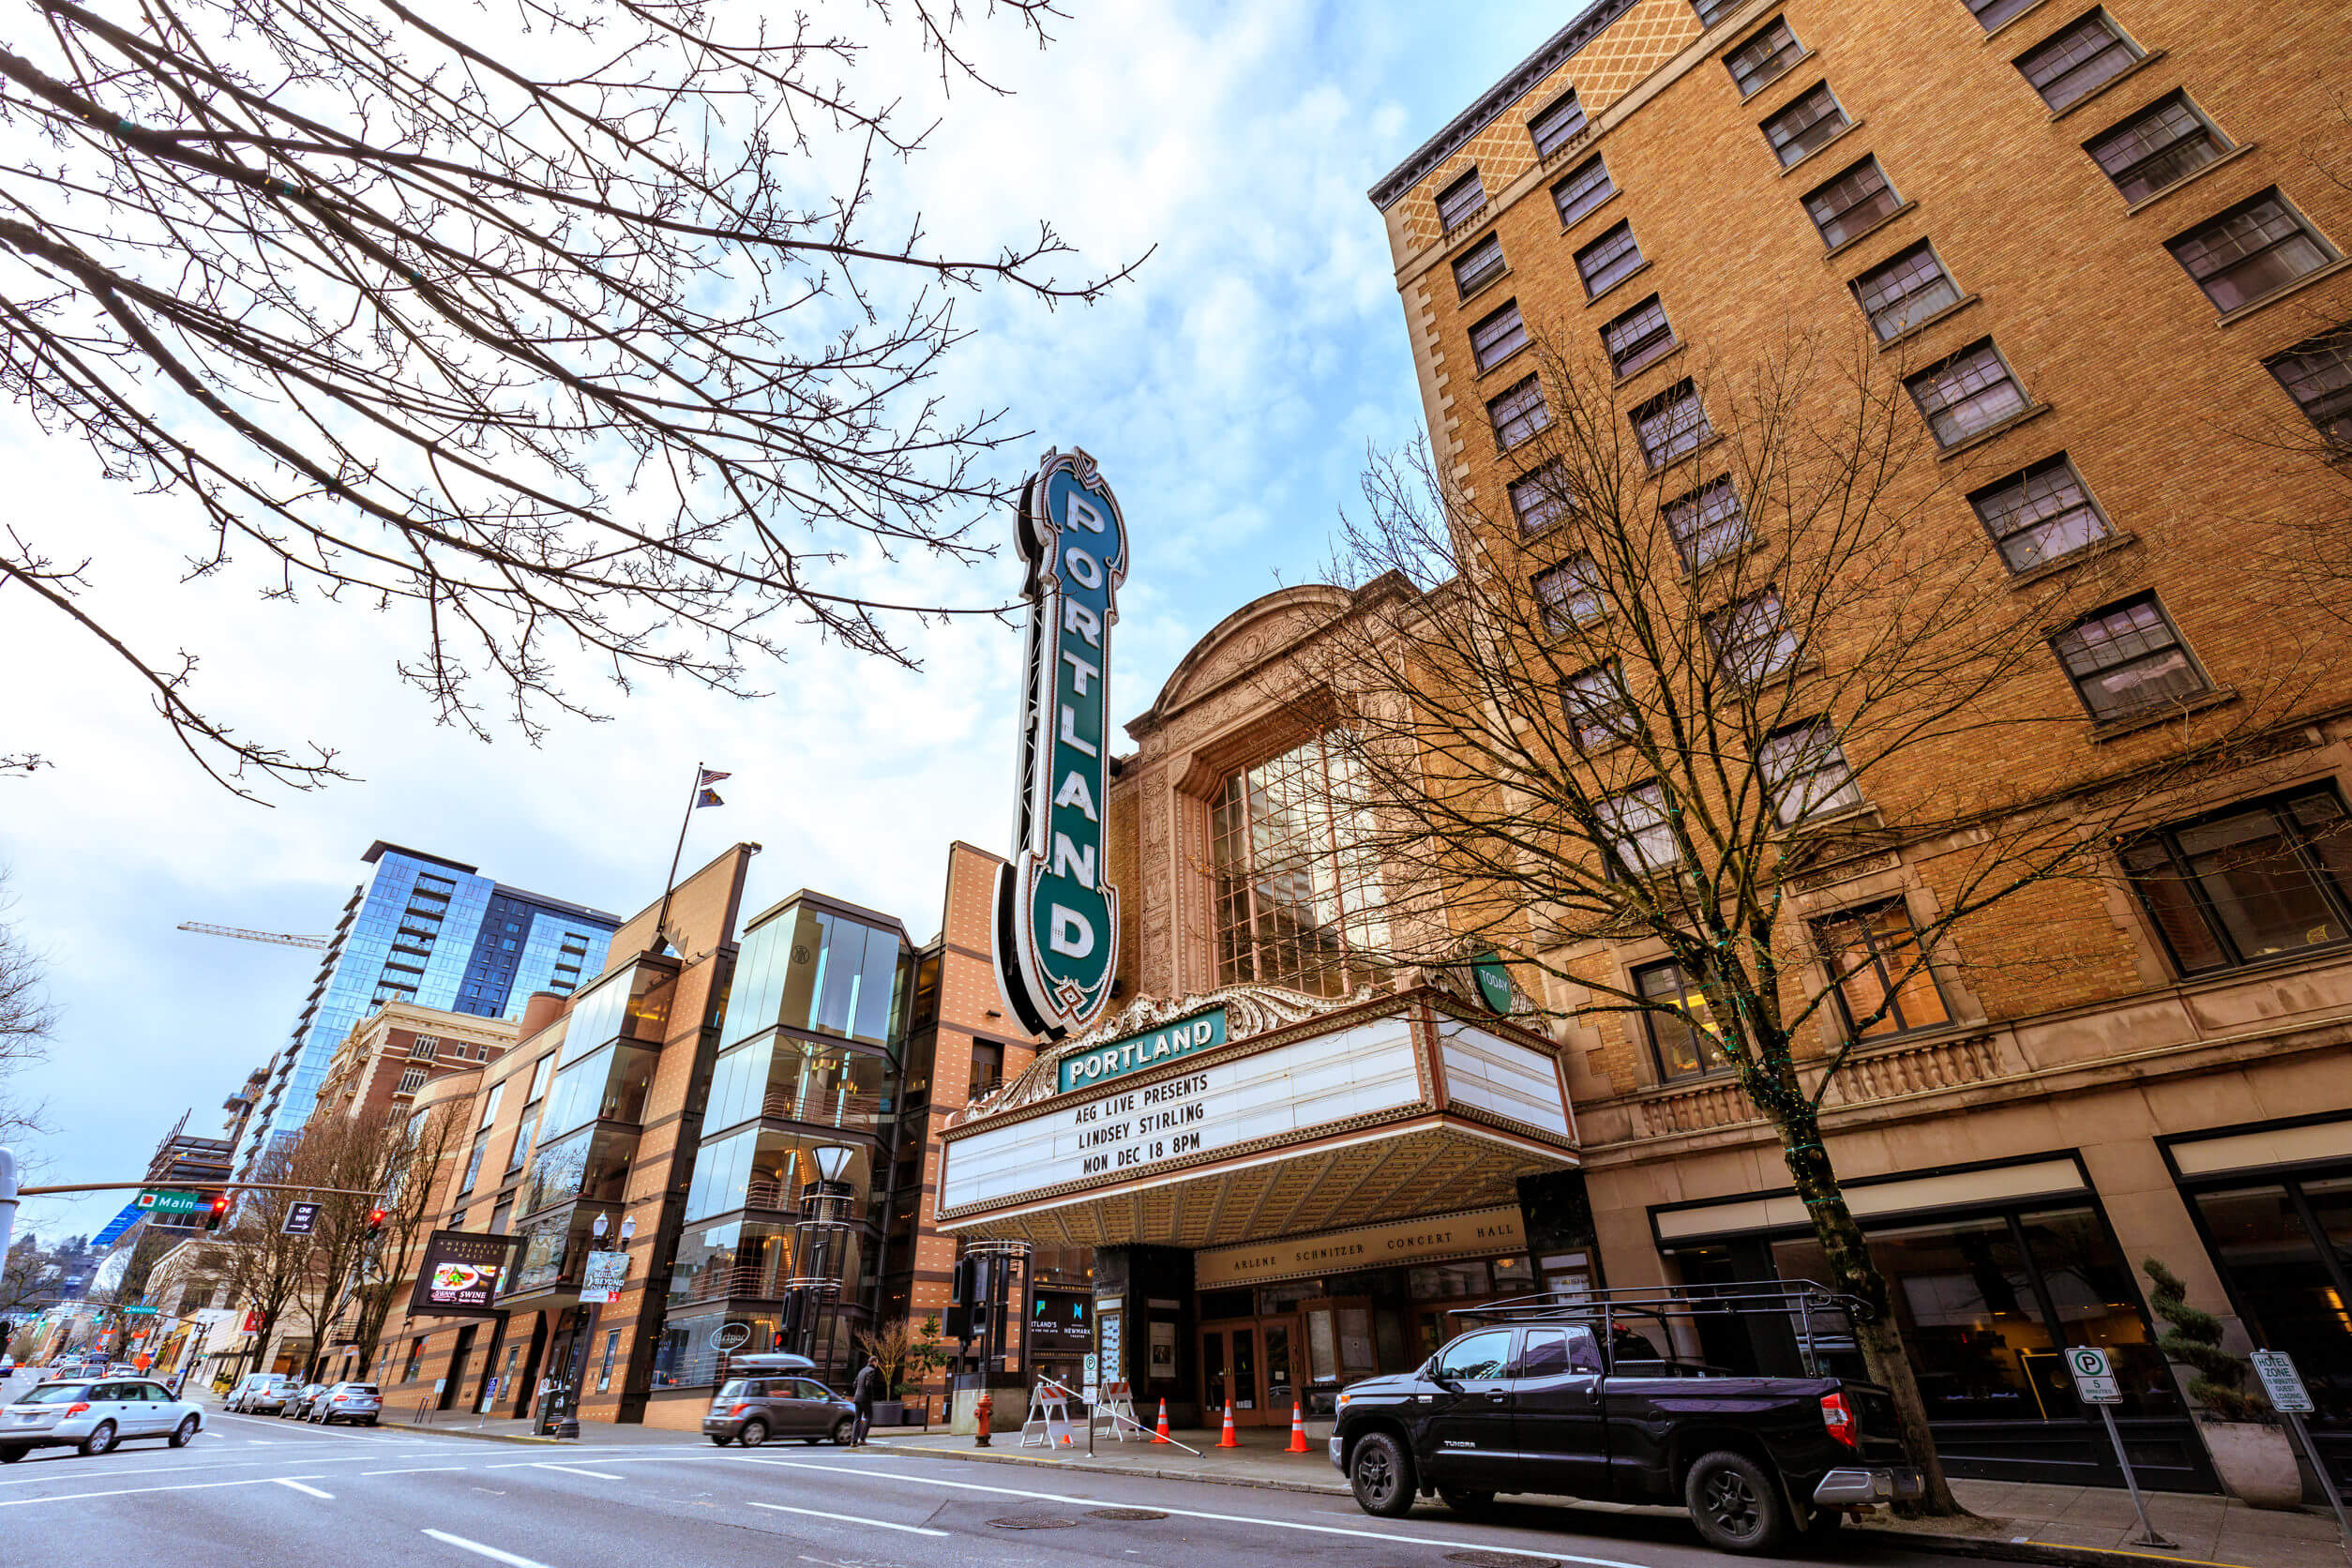 Portland, Oregon, United States - Dec 19, 2017: The iconic Portland sign of Arlene Schnitzer Concert Hall in downtown at winter season